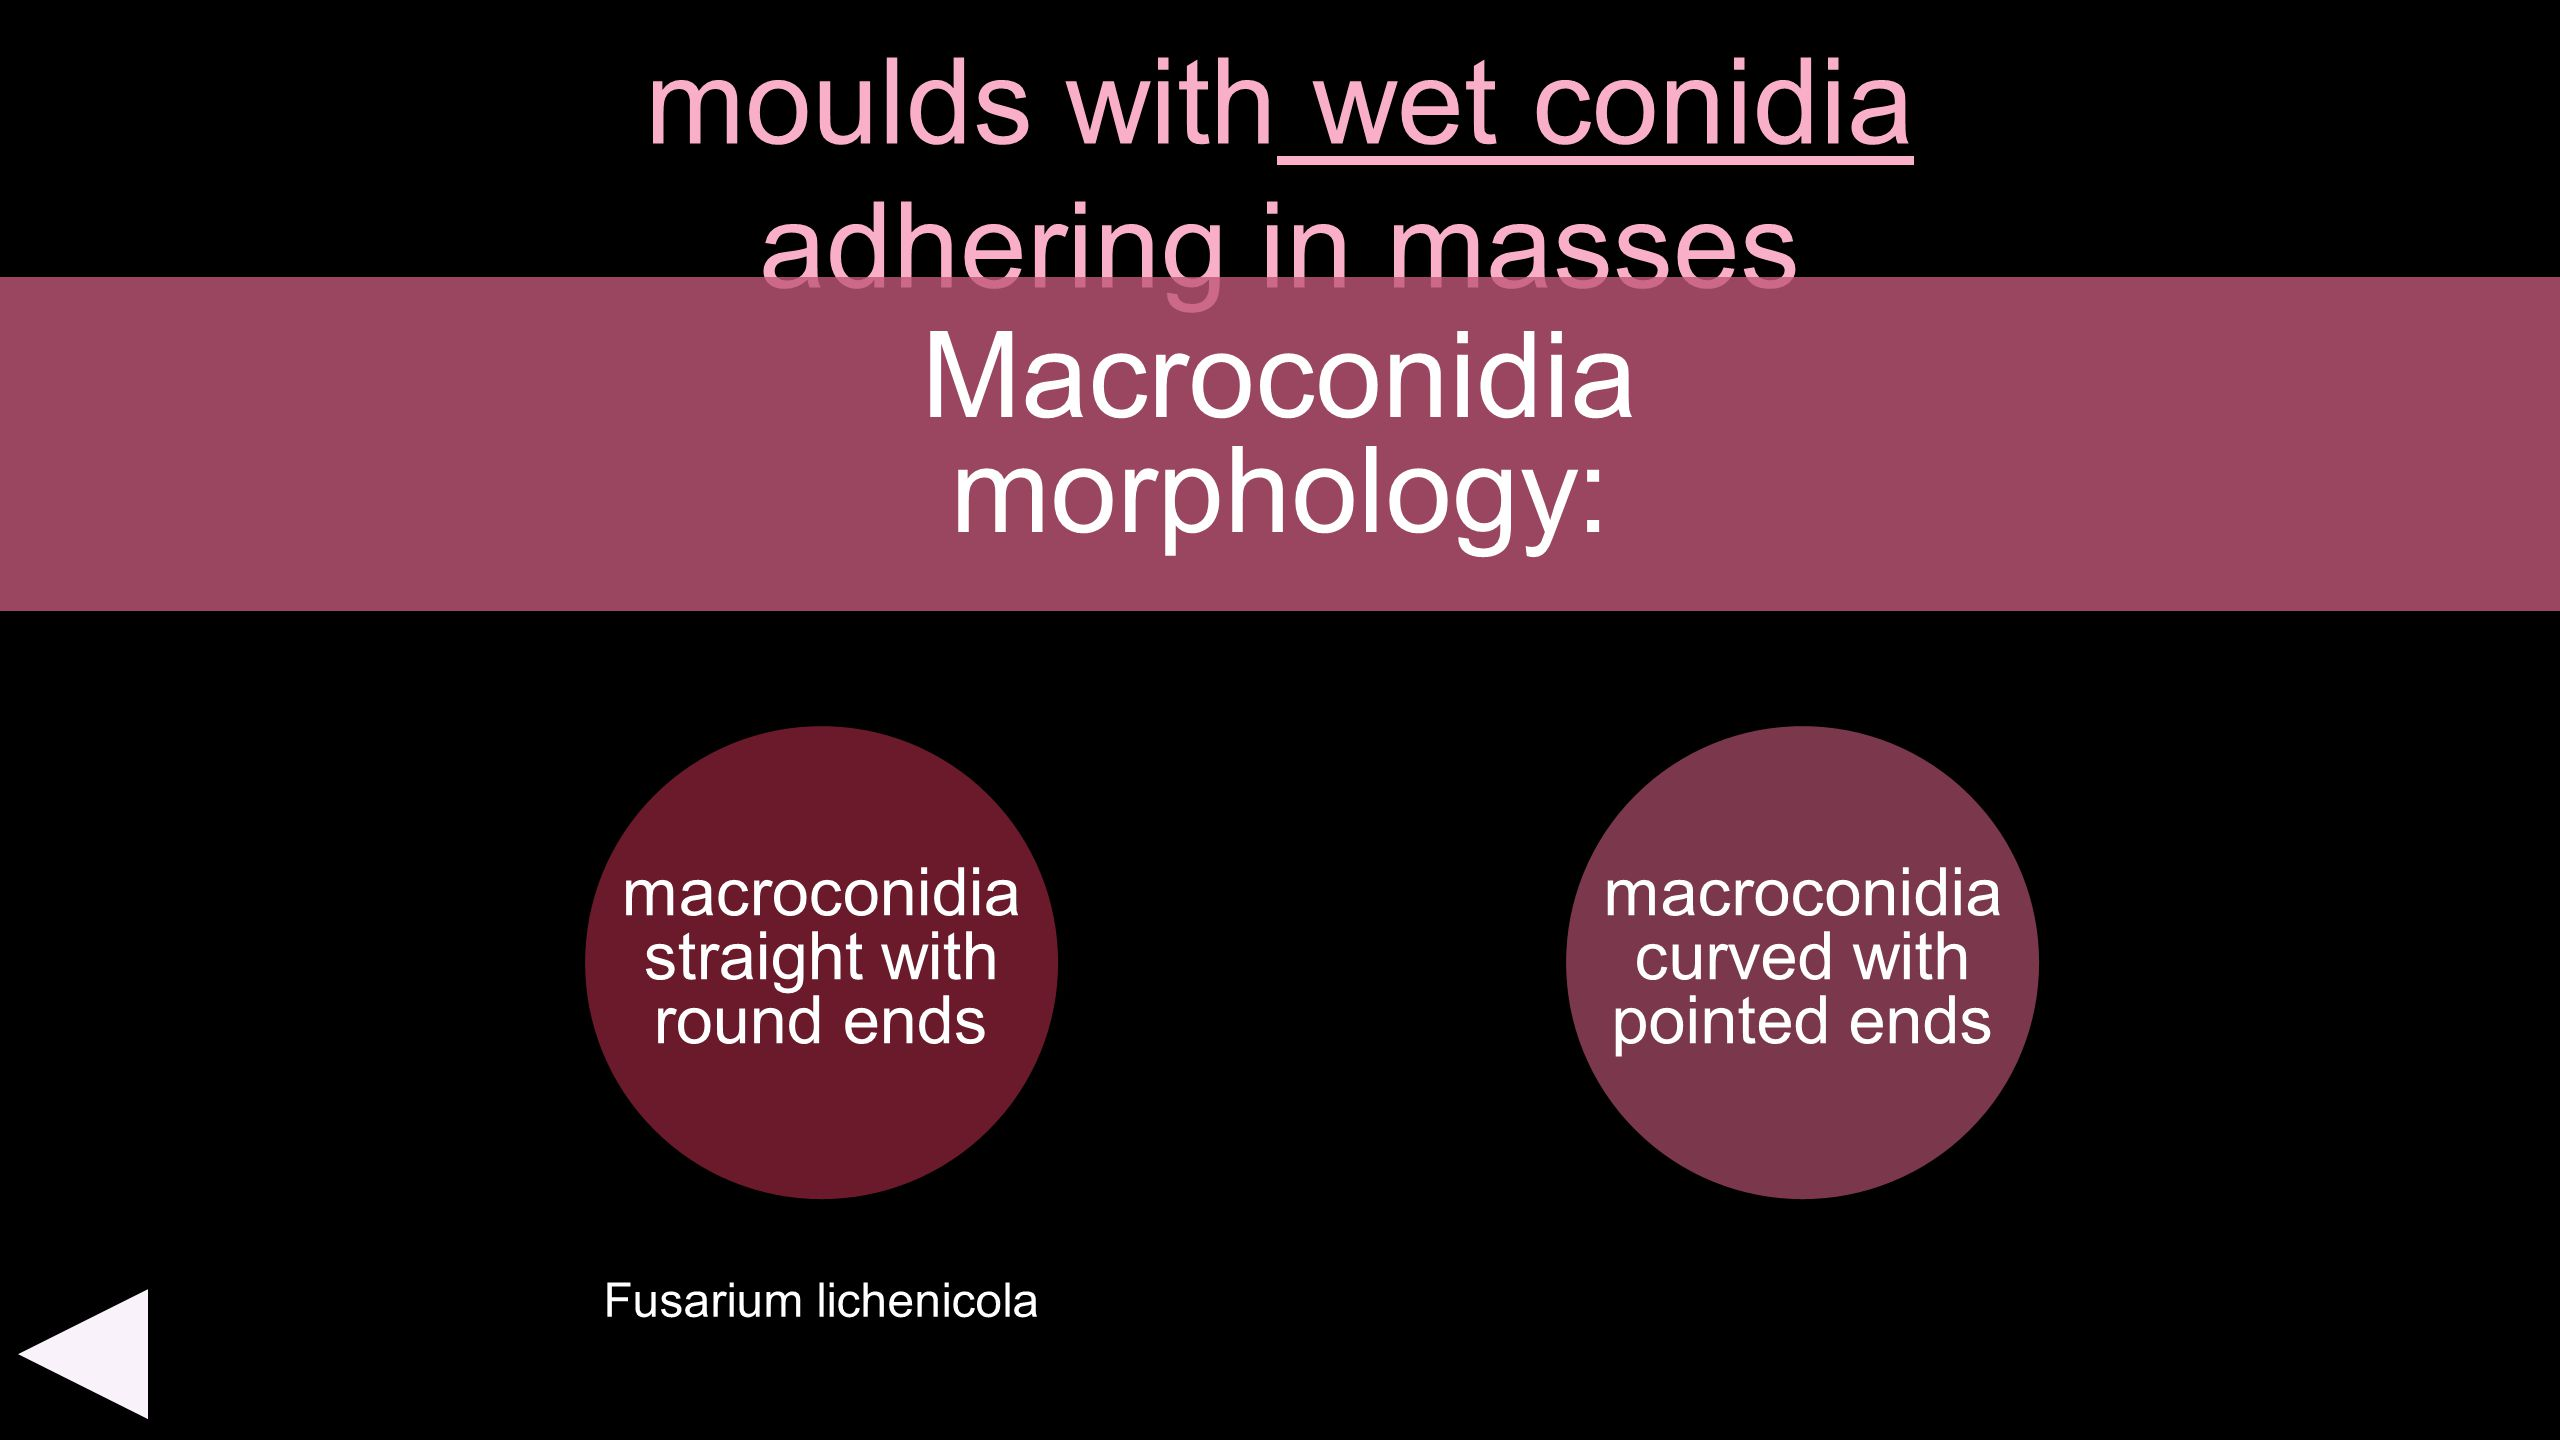 moulds with wet conidia adhering in masses macroconidia straight with round ends Macroconidia morphology: macroconidia curved with pointed ends Fusari